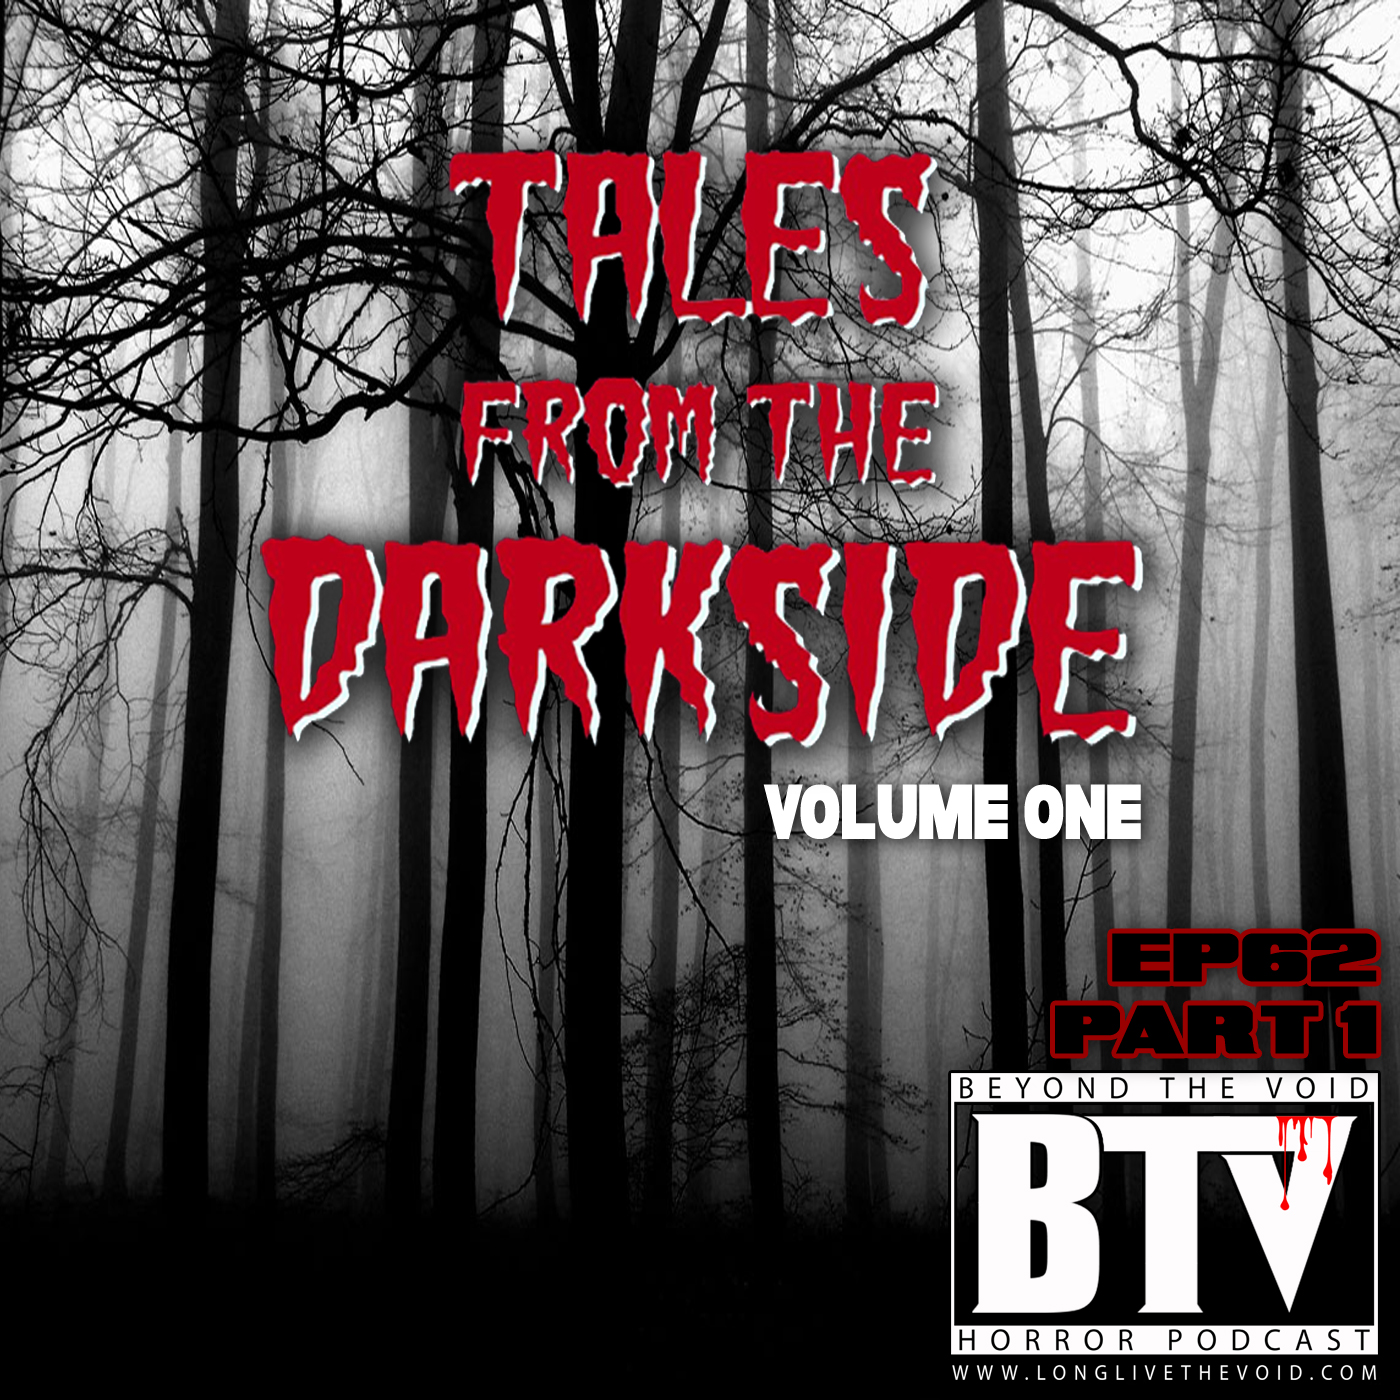 Tales-From-The-Darkside-14x.jpg